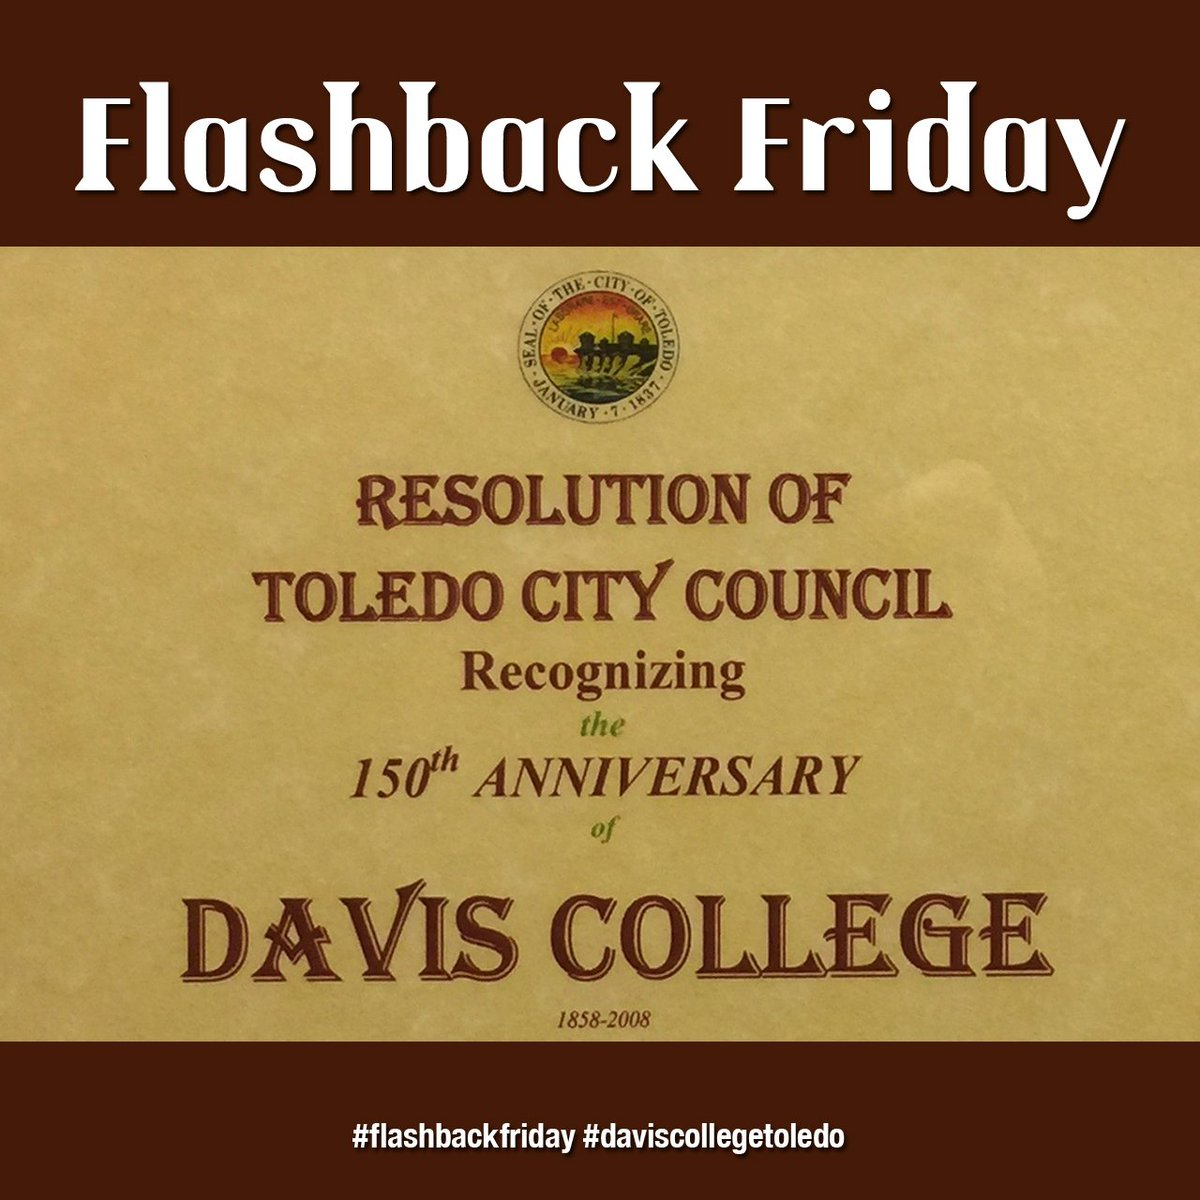 #flashbackfriday #daviscollegetoledo https://t.co/MhOSSTZOwB